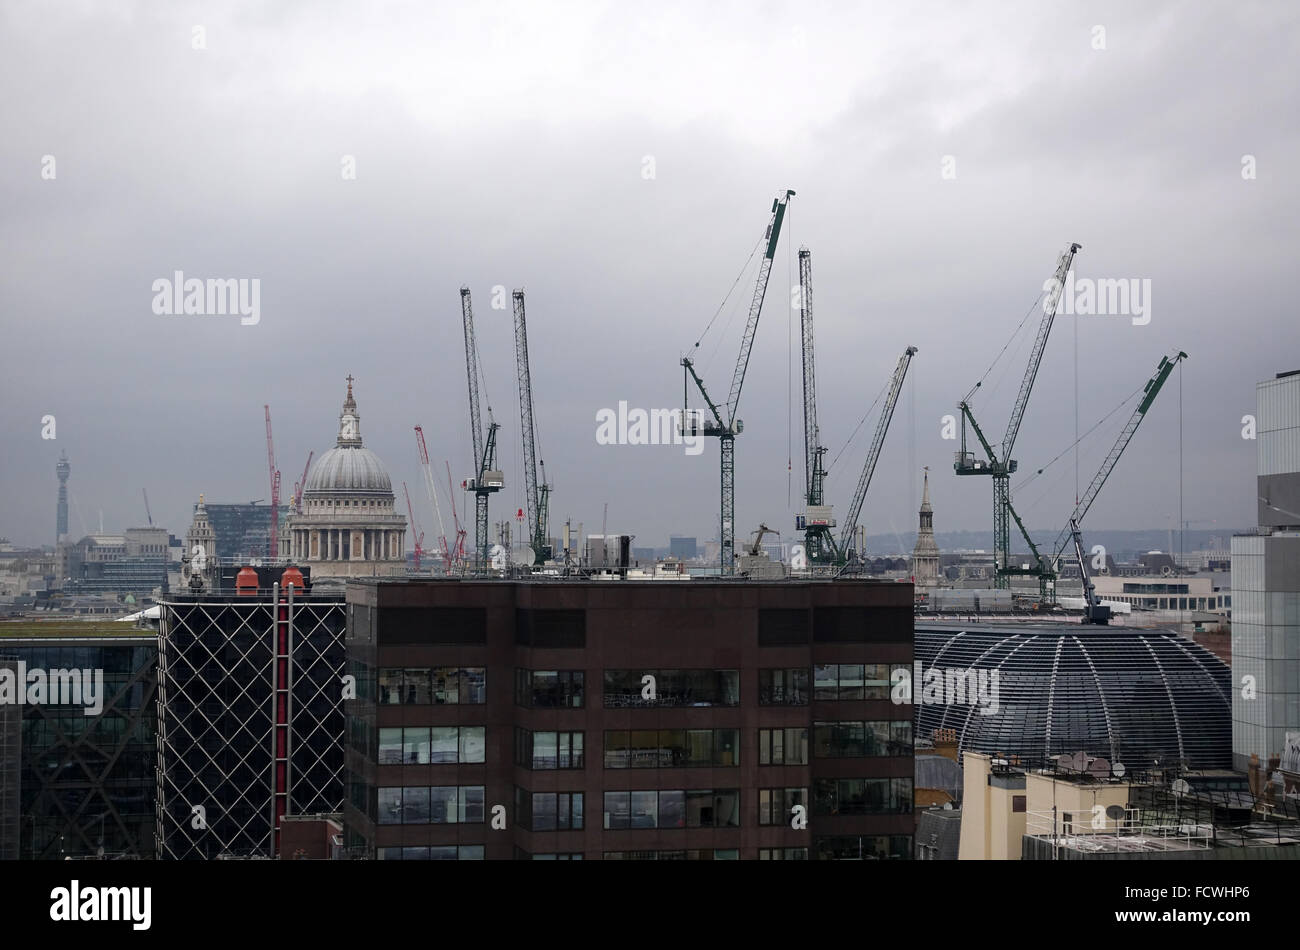 Cranes Towering over the London Skyline -1 - Stock Image